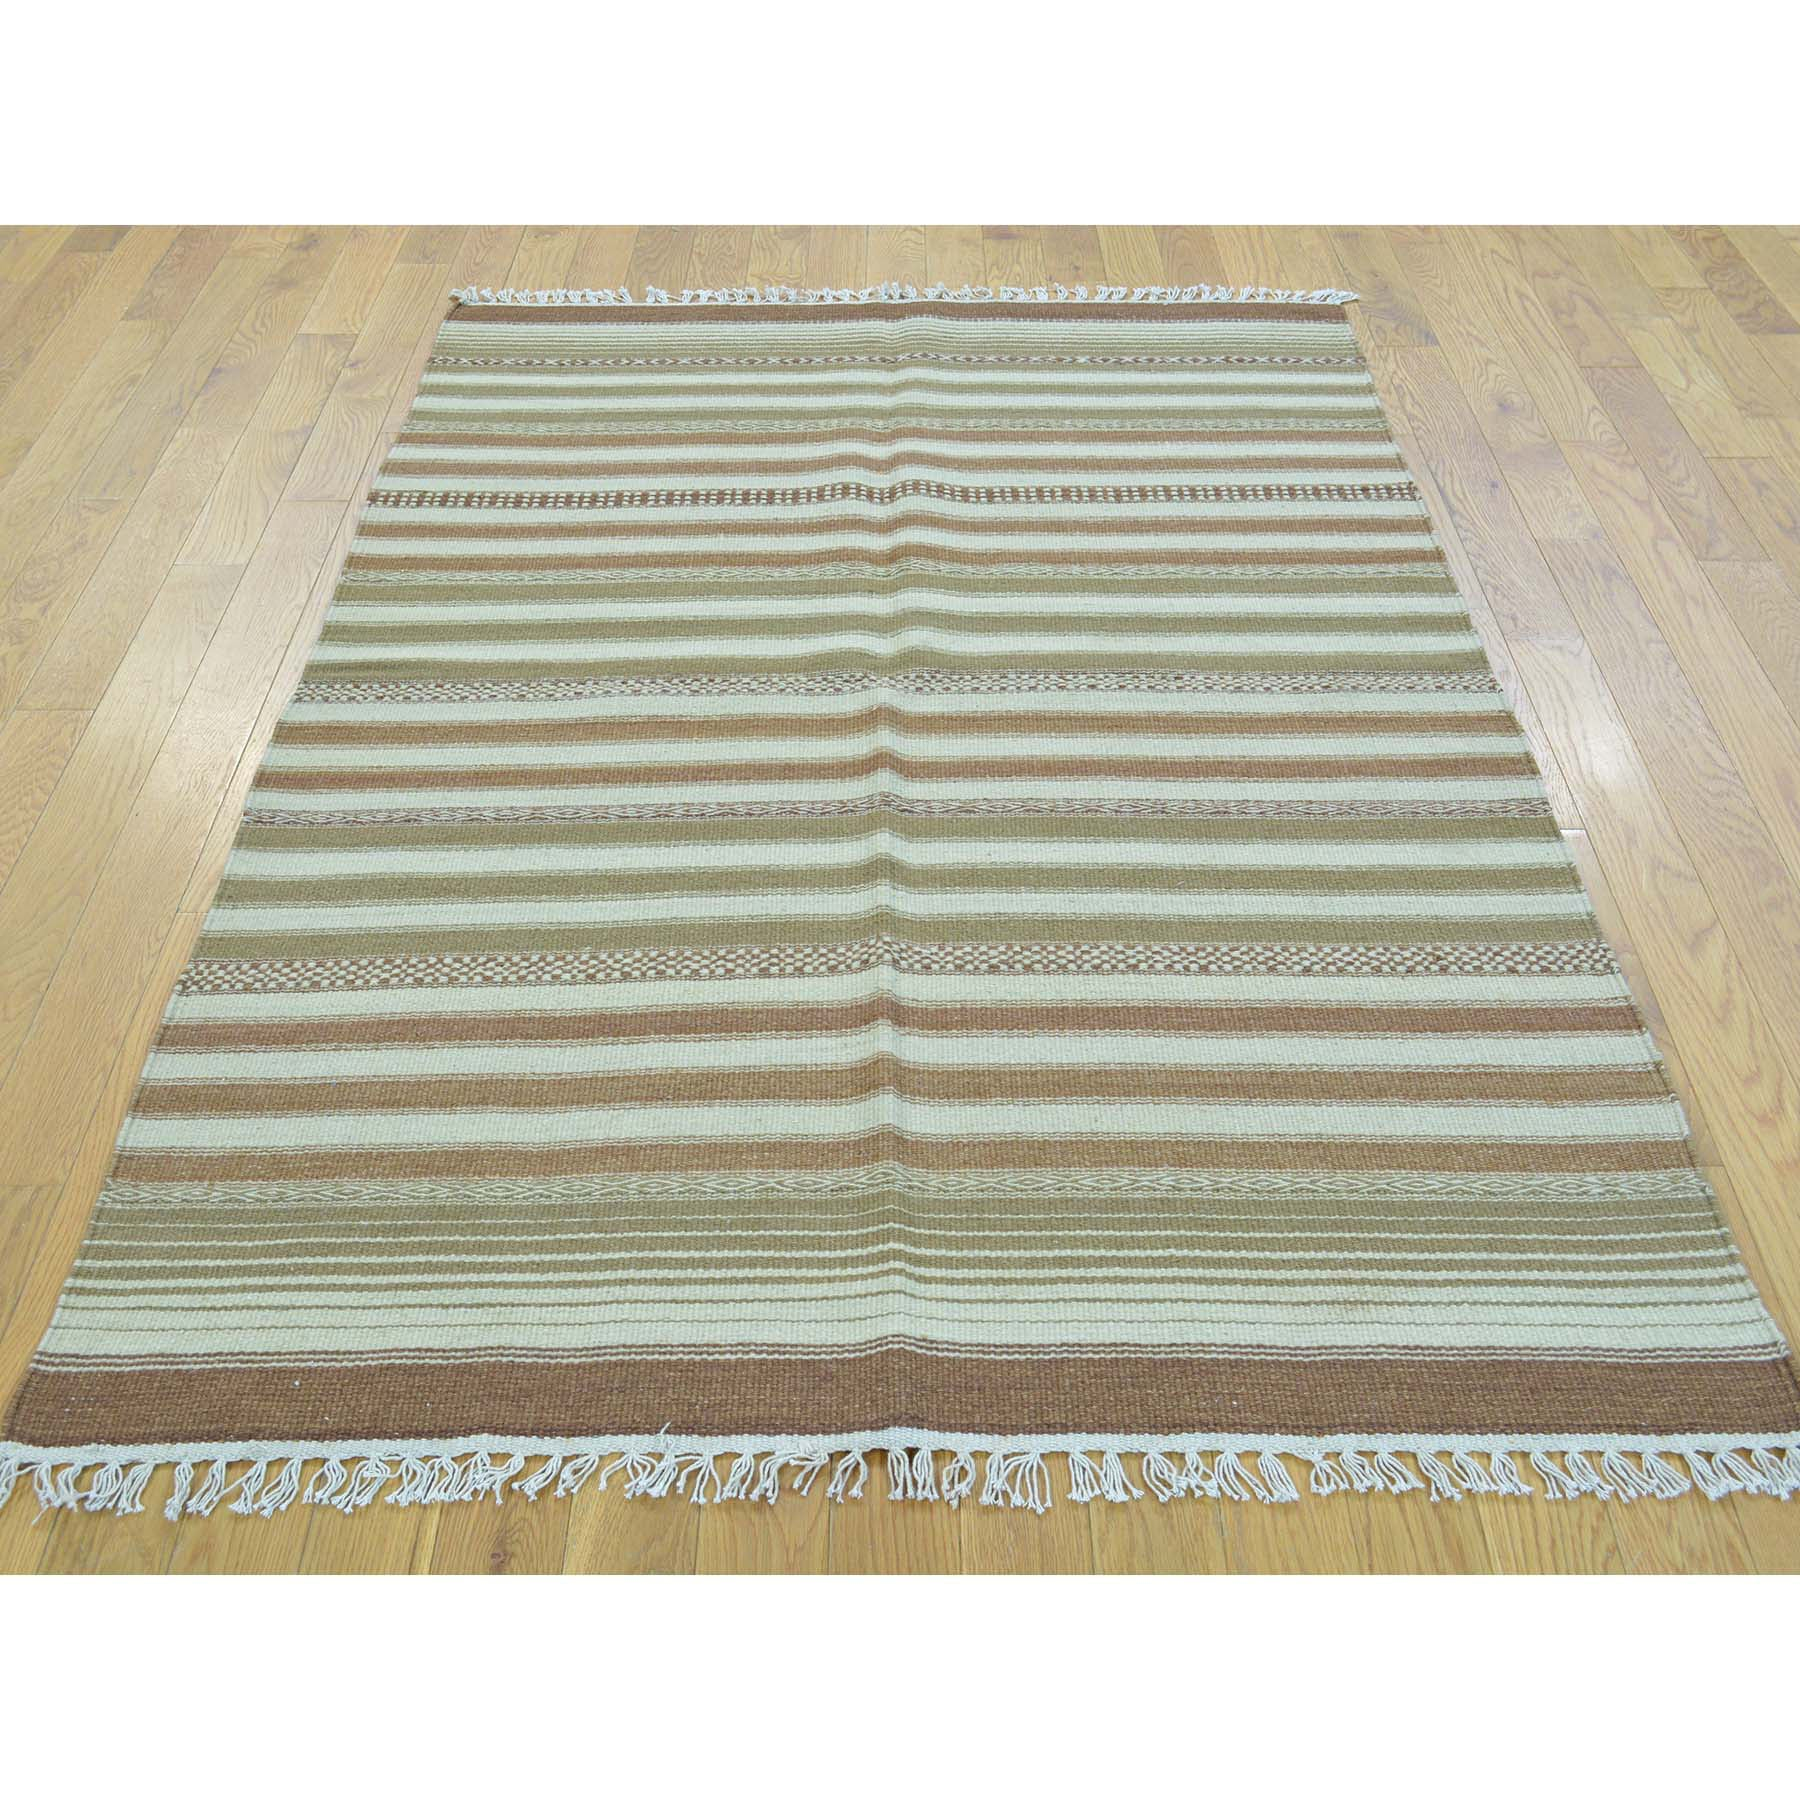 "Handmade Flat Weave Rectangle Rug > Design# SH30021 > Size: 4'-0"" x 6'-0"" [ONLINE ONLY]"